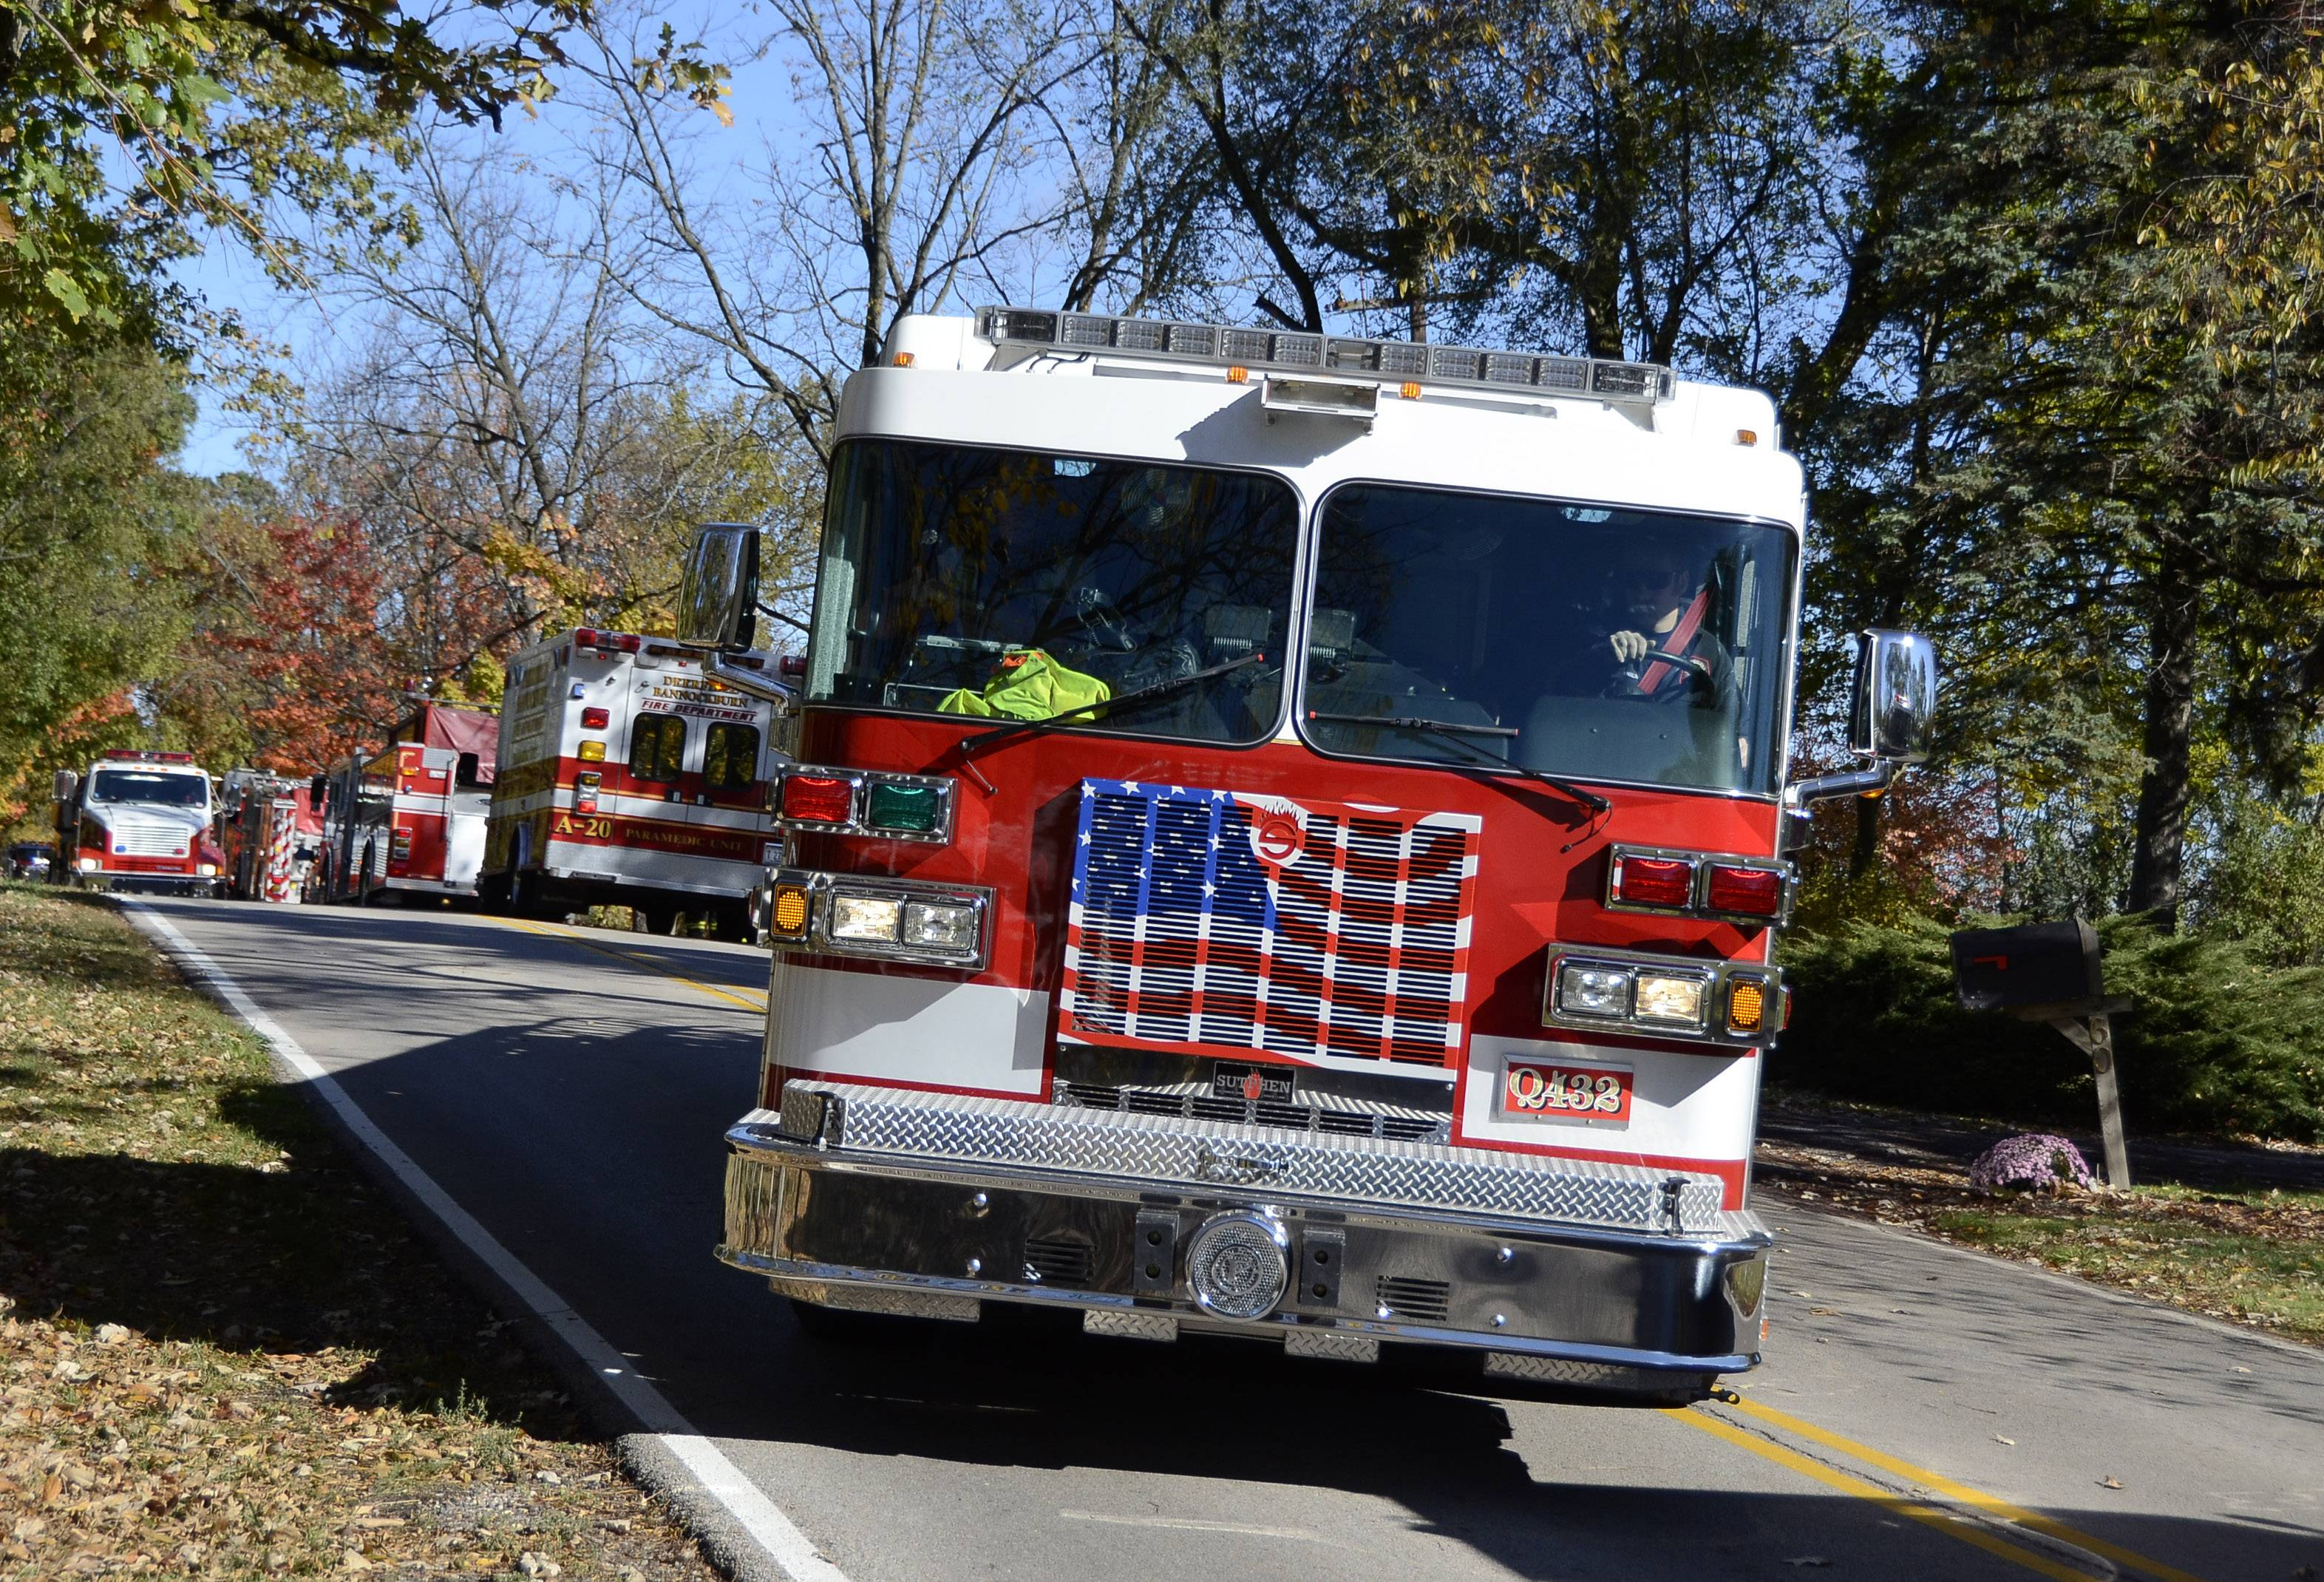 Barrington's fire insurance rating will receive a substantial upgrade effective Aug. 1, a reflection of the village's efforts to reorganize its fire department since the Jan. 1 split from the Barrington Countryside Fire Protection District.